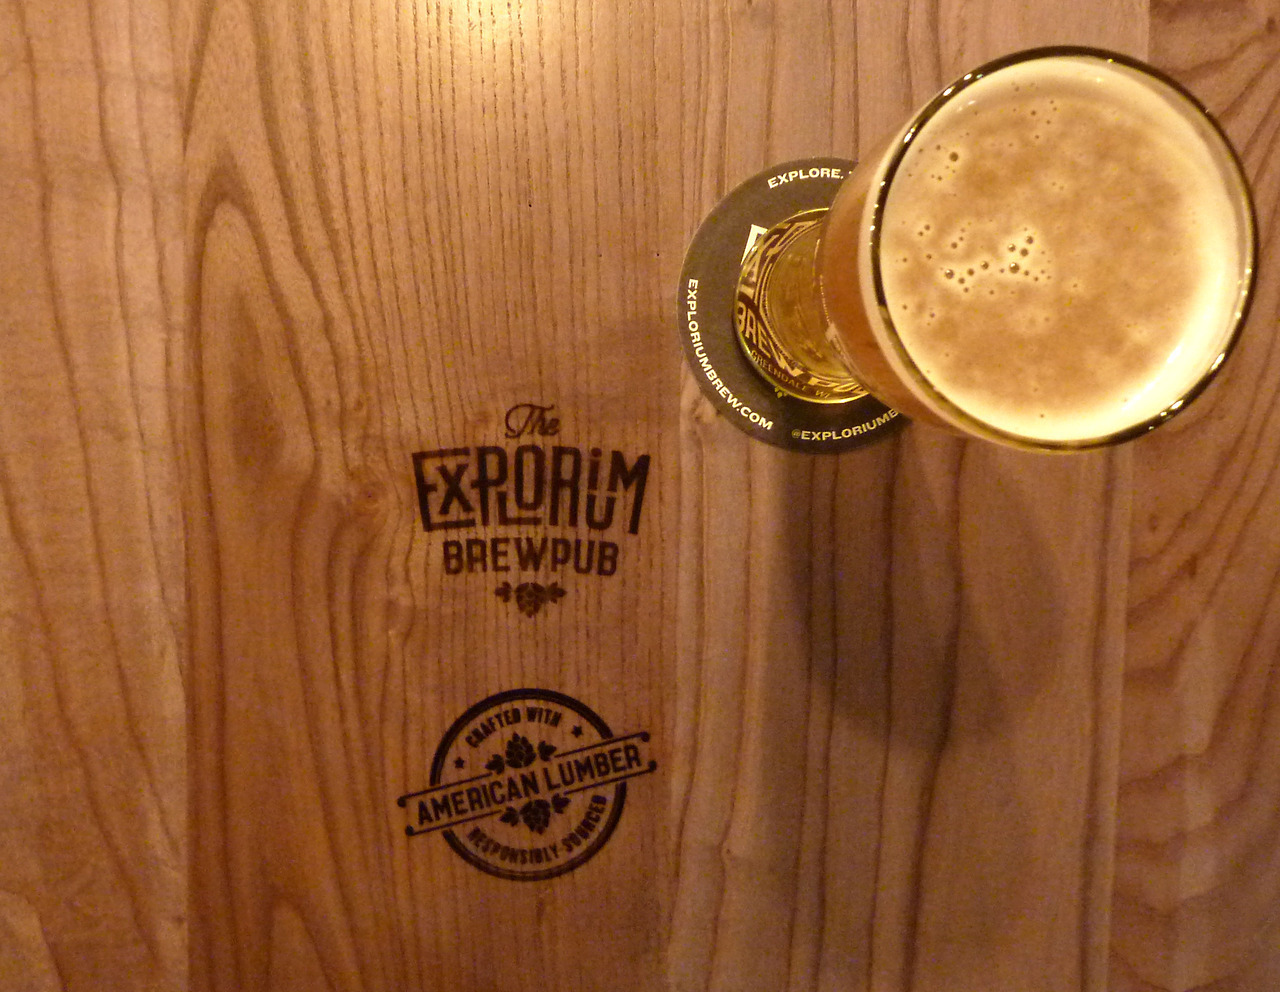 Wood branding done on a tabletop by i2i Designs at The Explorium Brewpub in Greendale, WI.